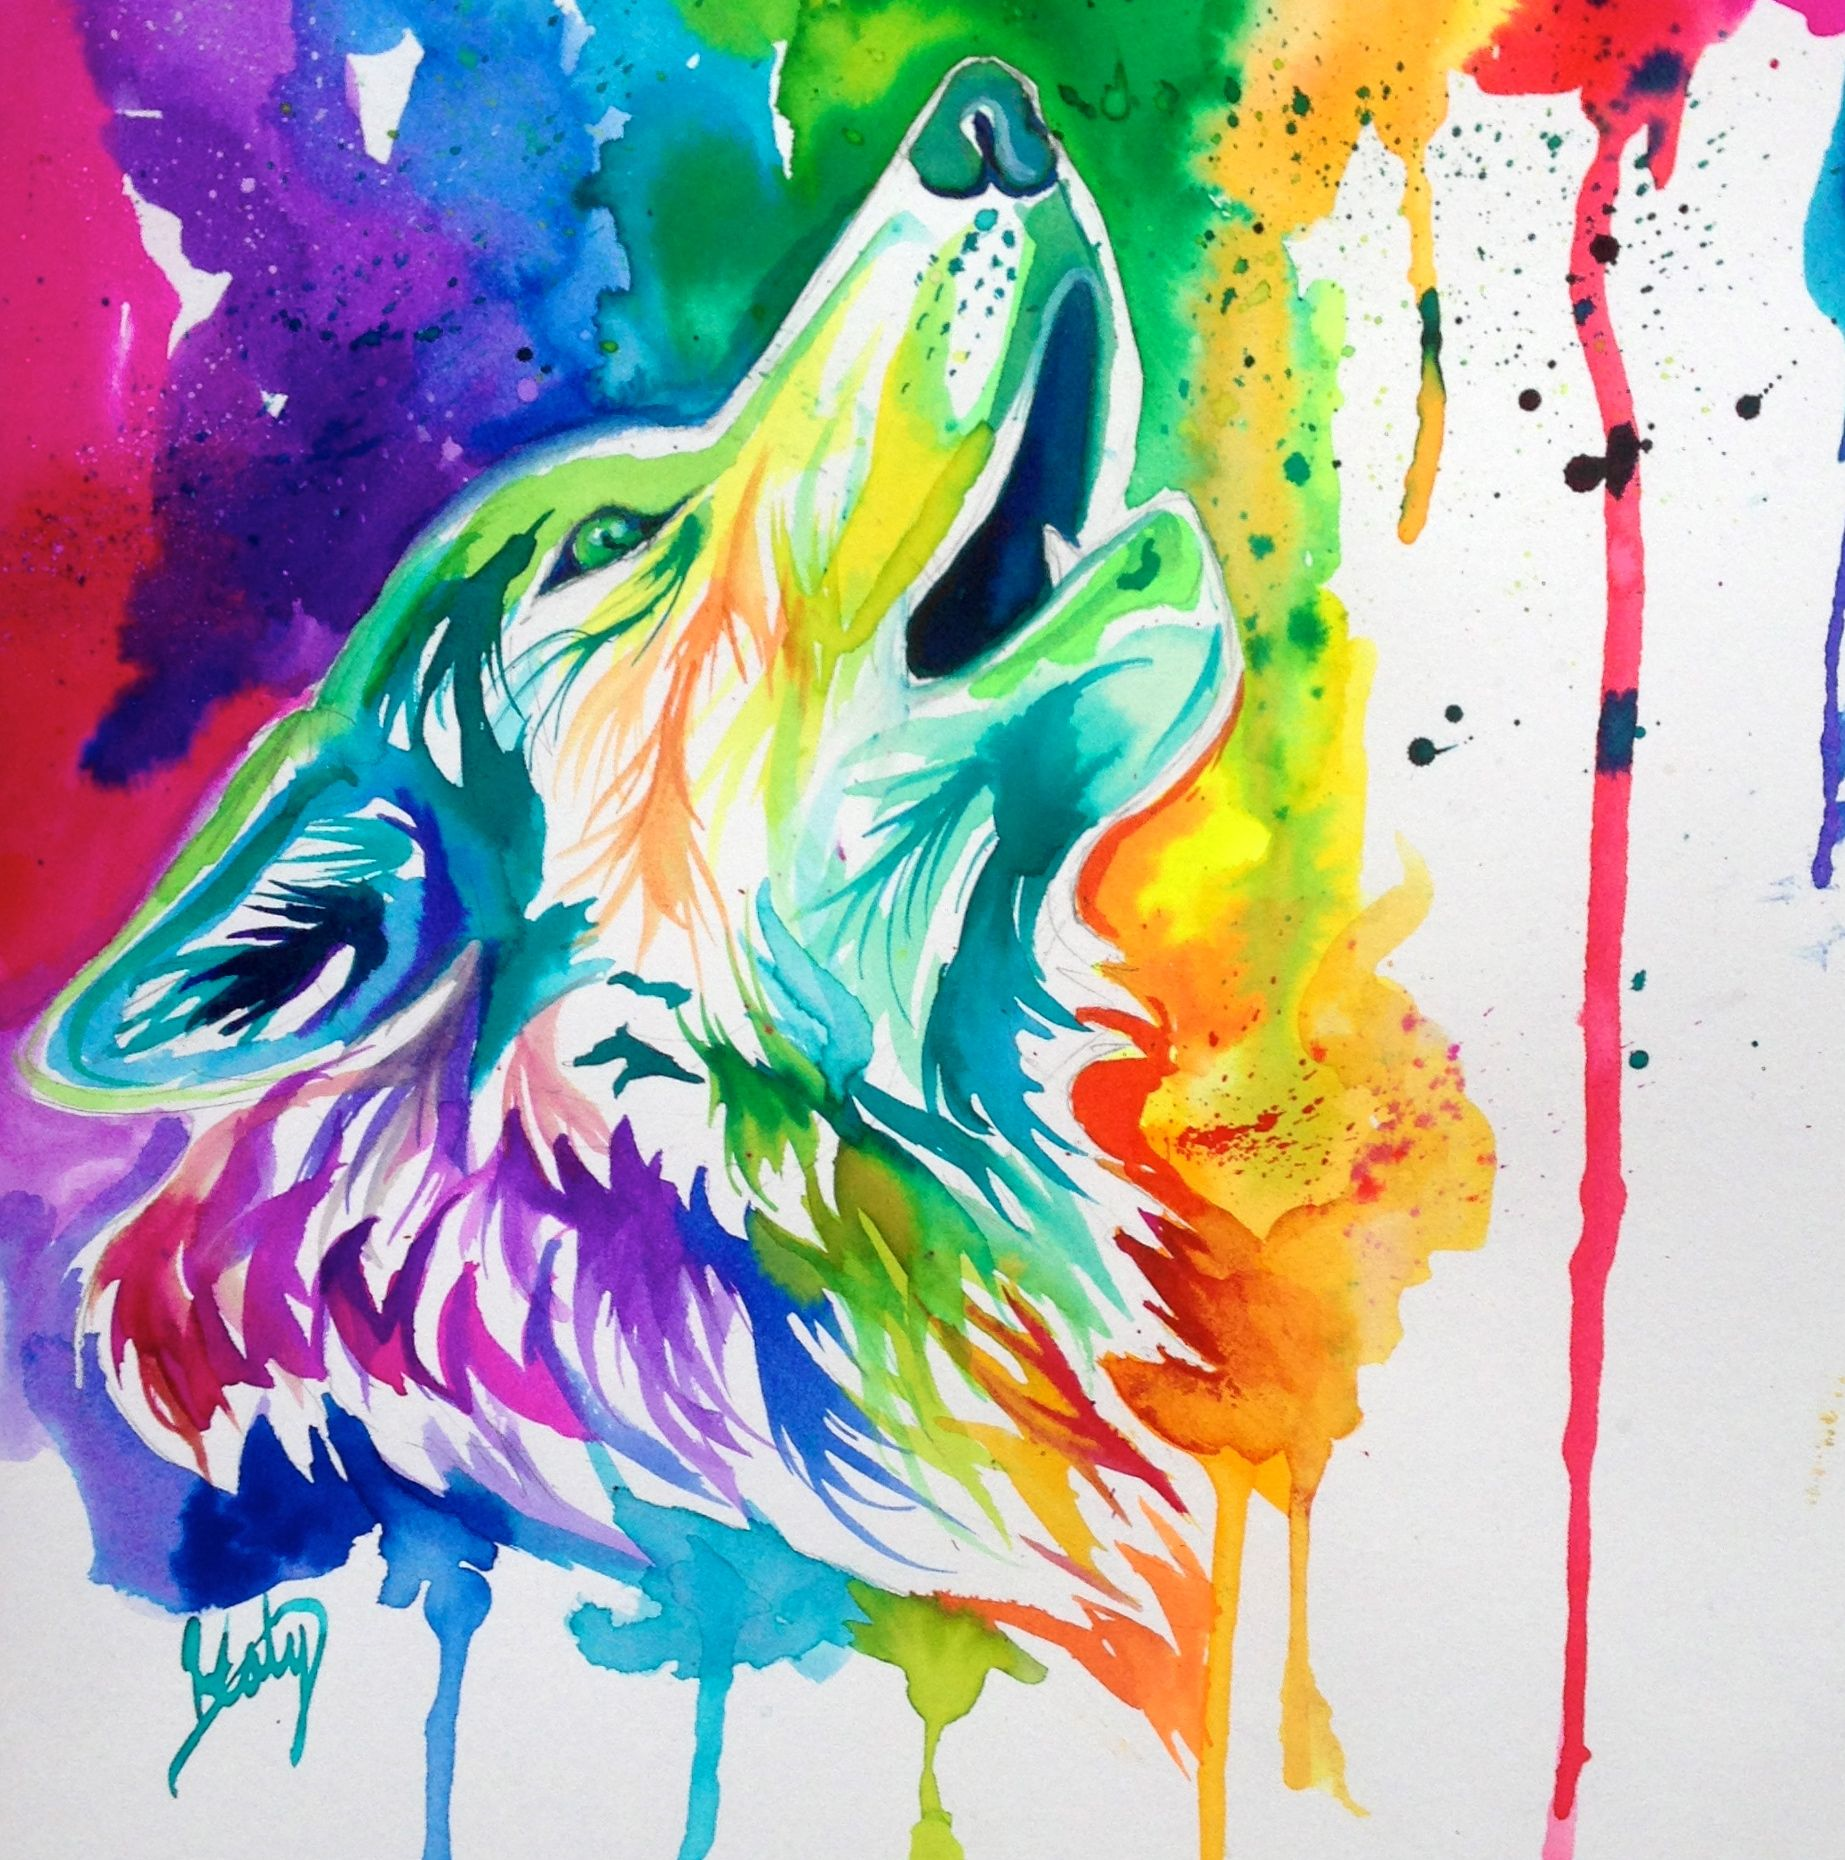 Colorful tumblr pictures hd photos gallery colorful colorful tumblr pictures hd photos gallery voltagebd Gallery